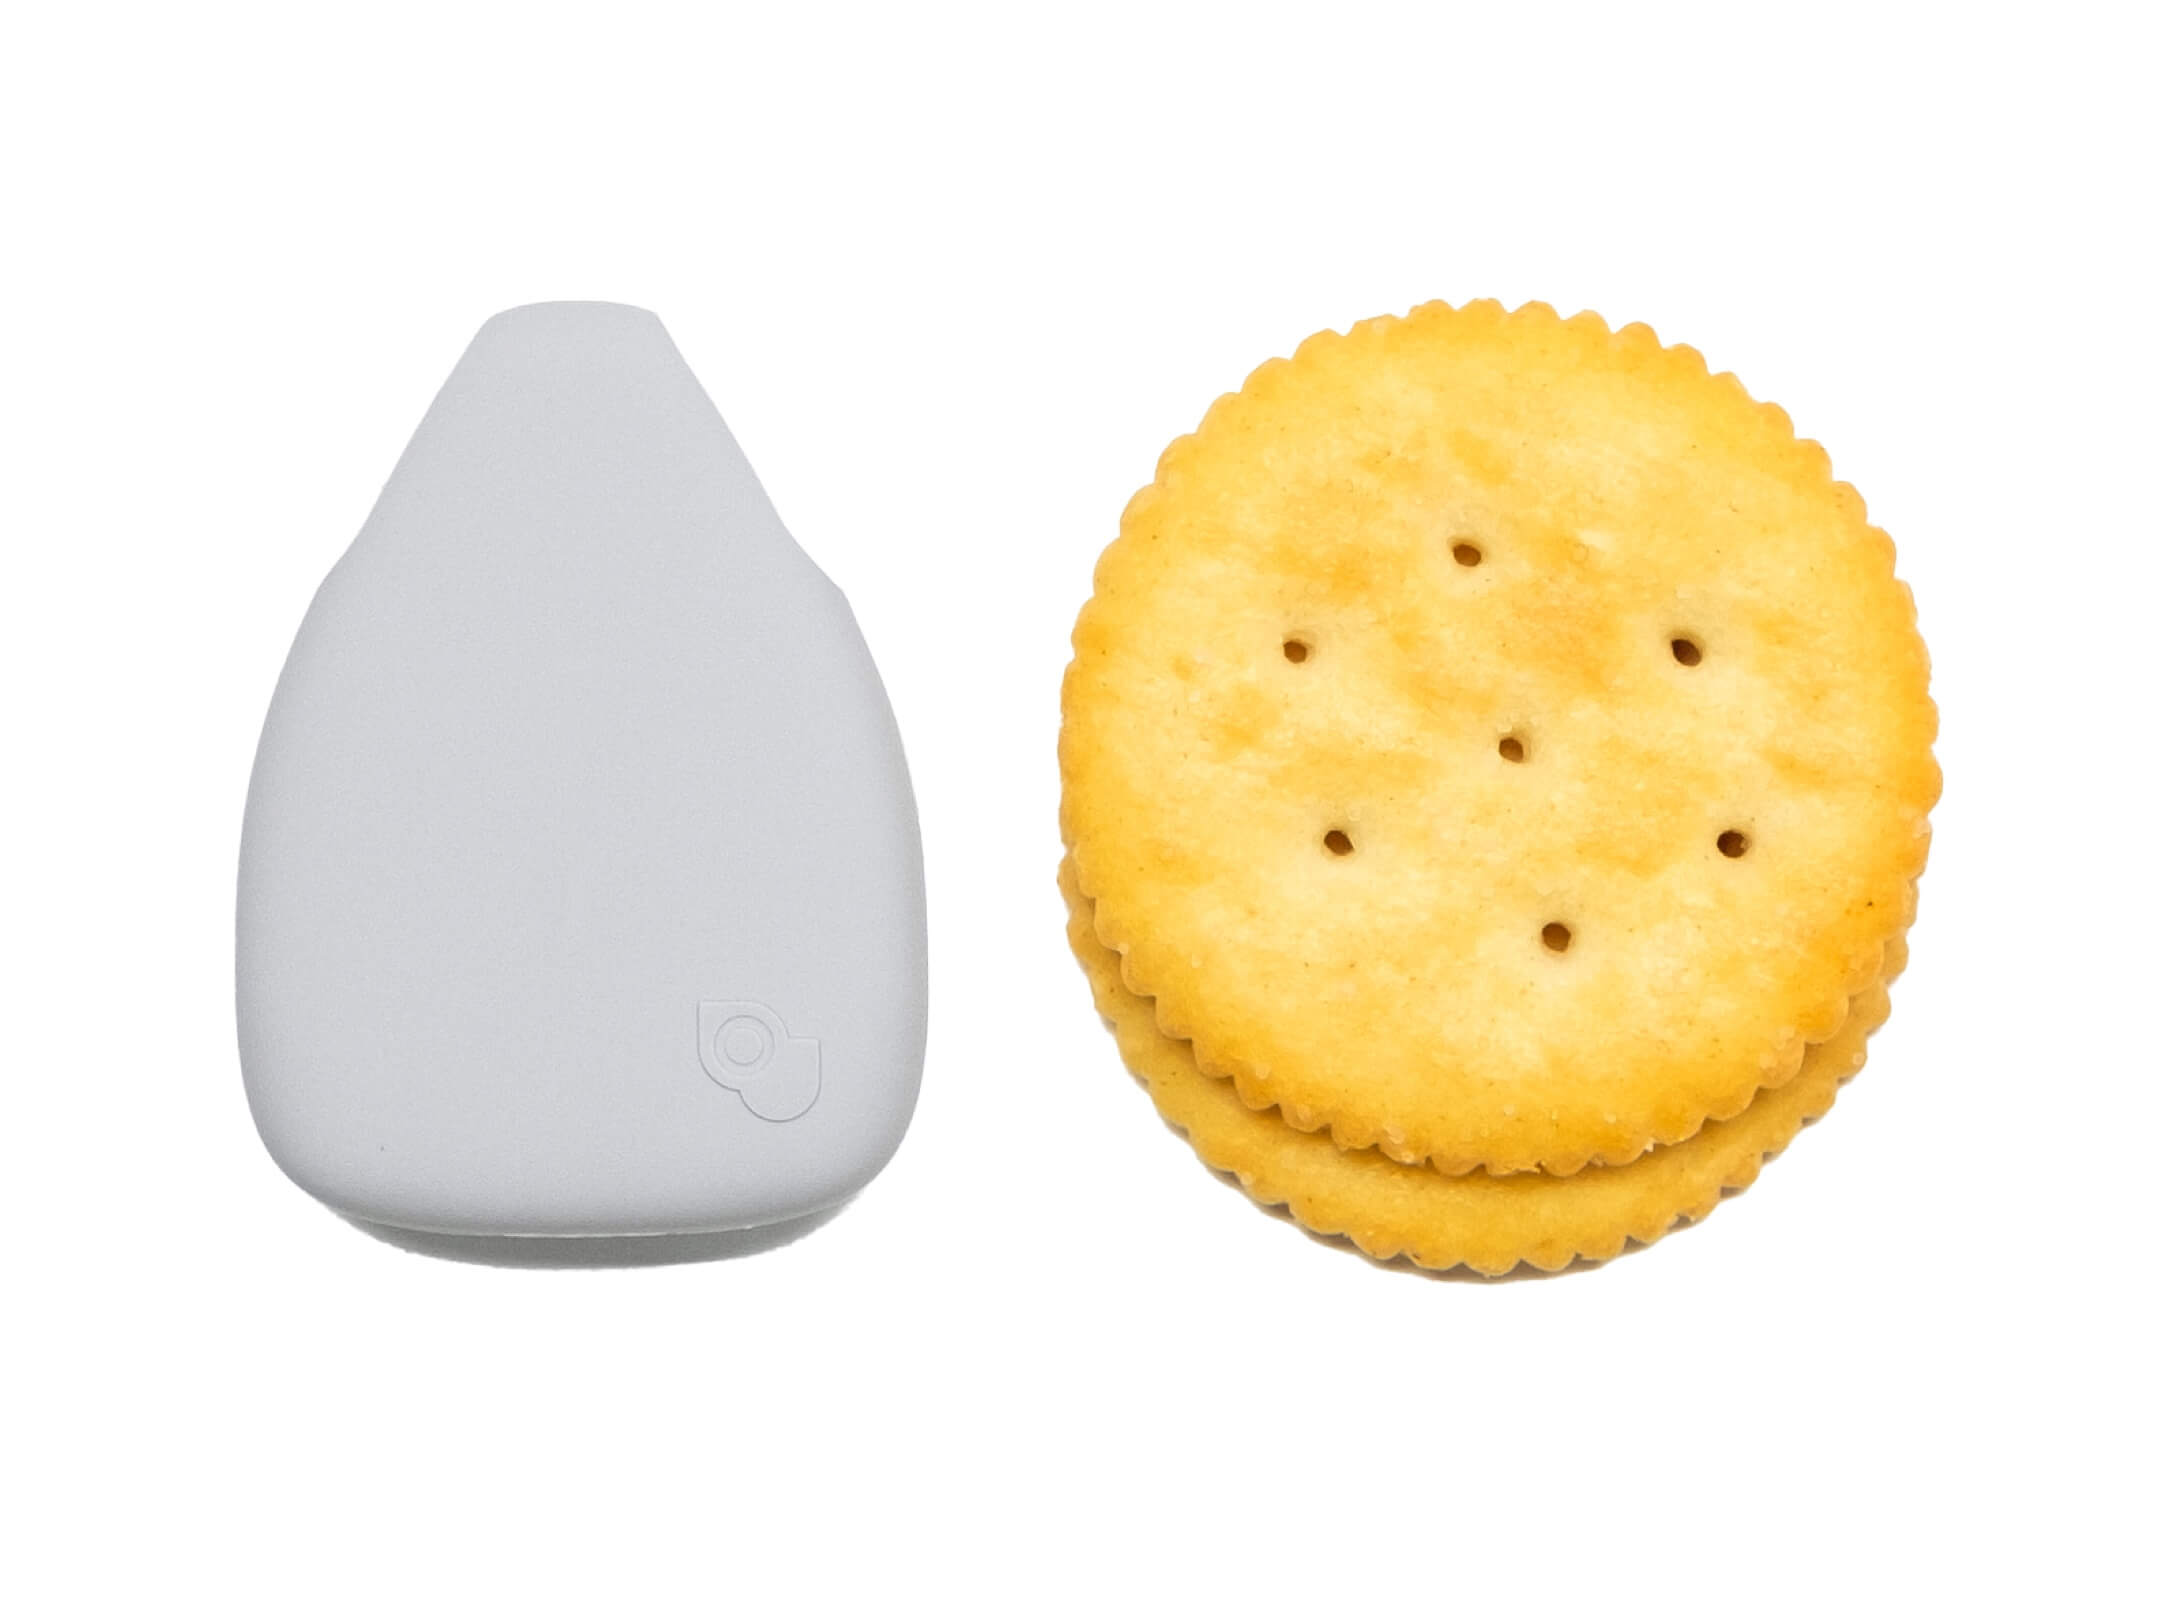 Jiobit is as small as a couple of crackers